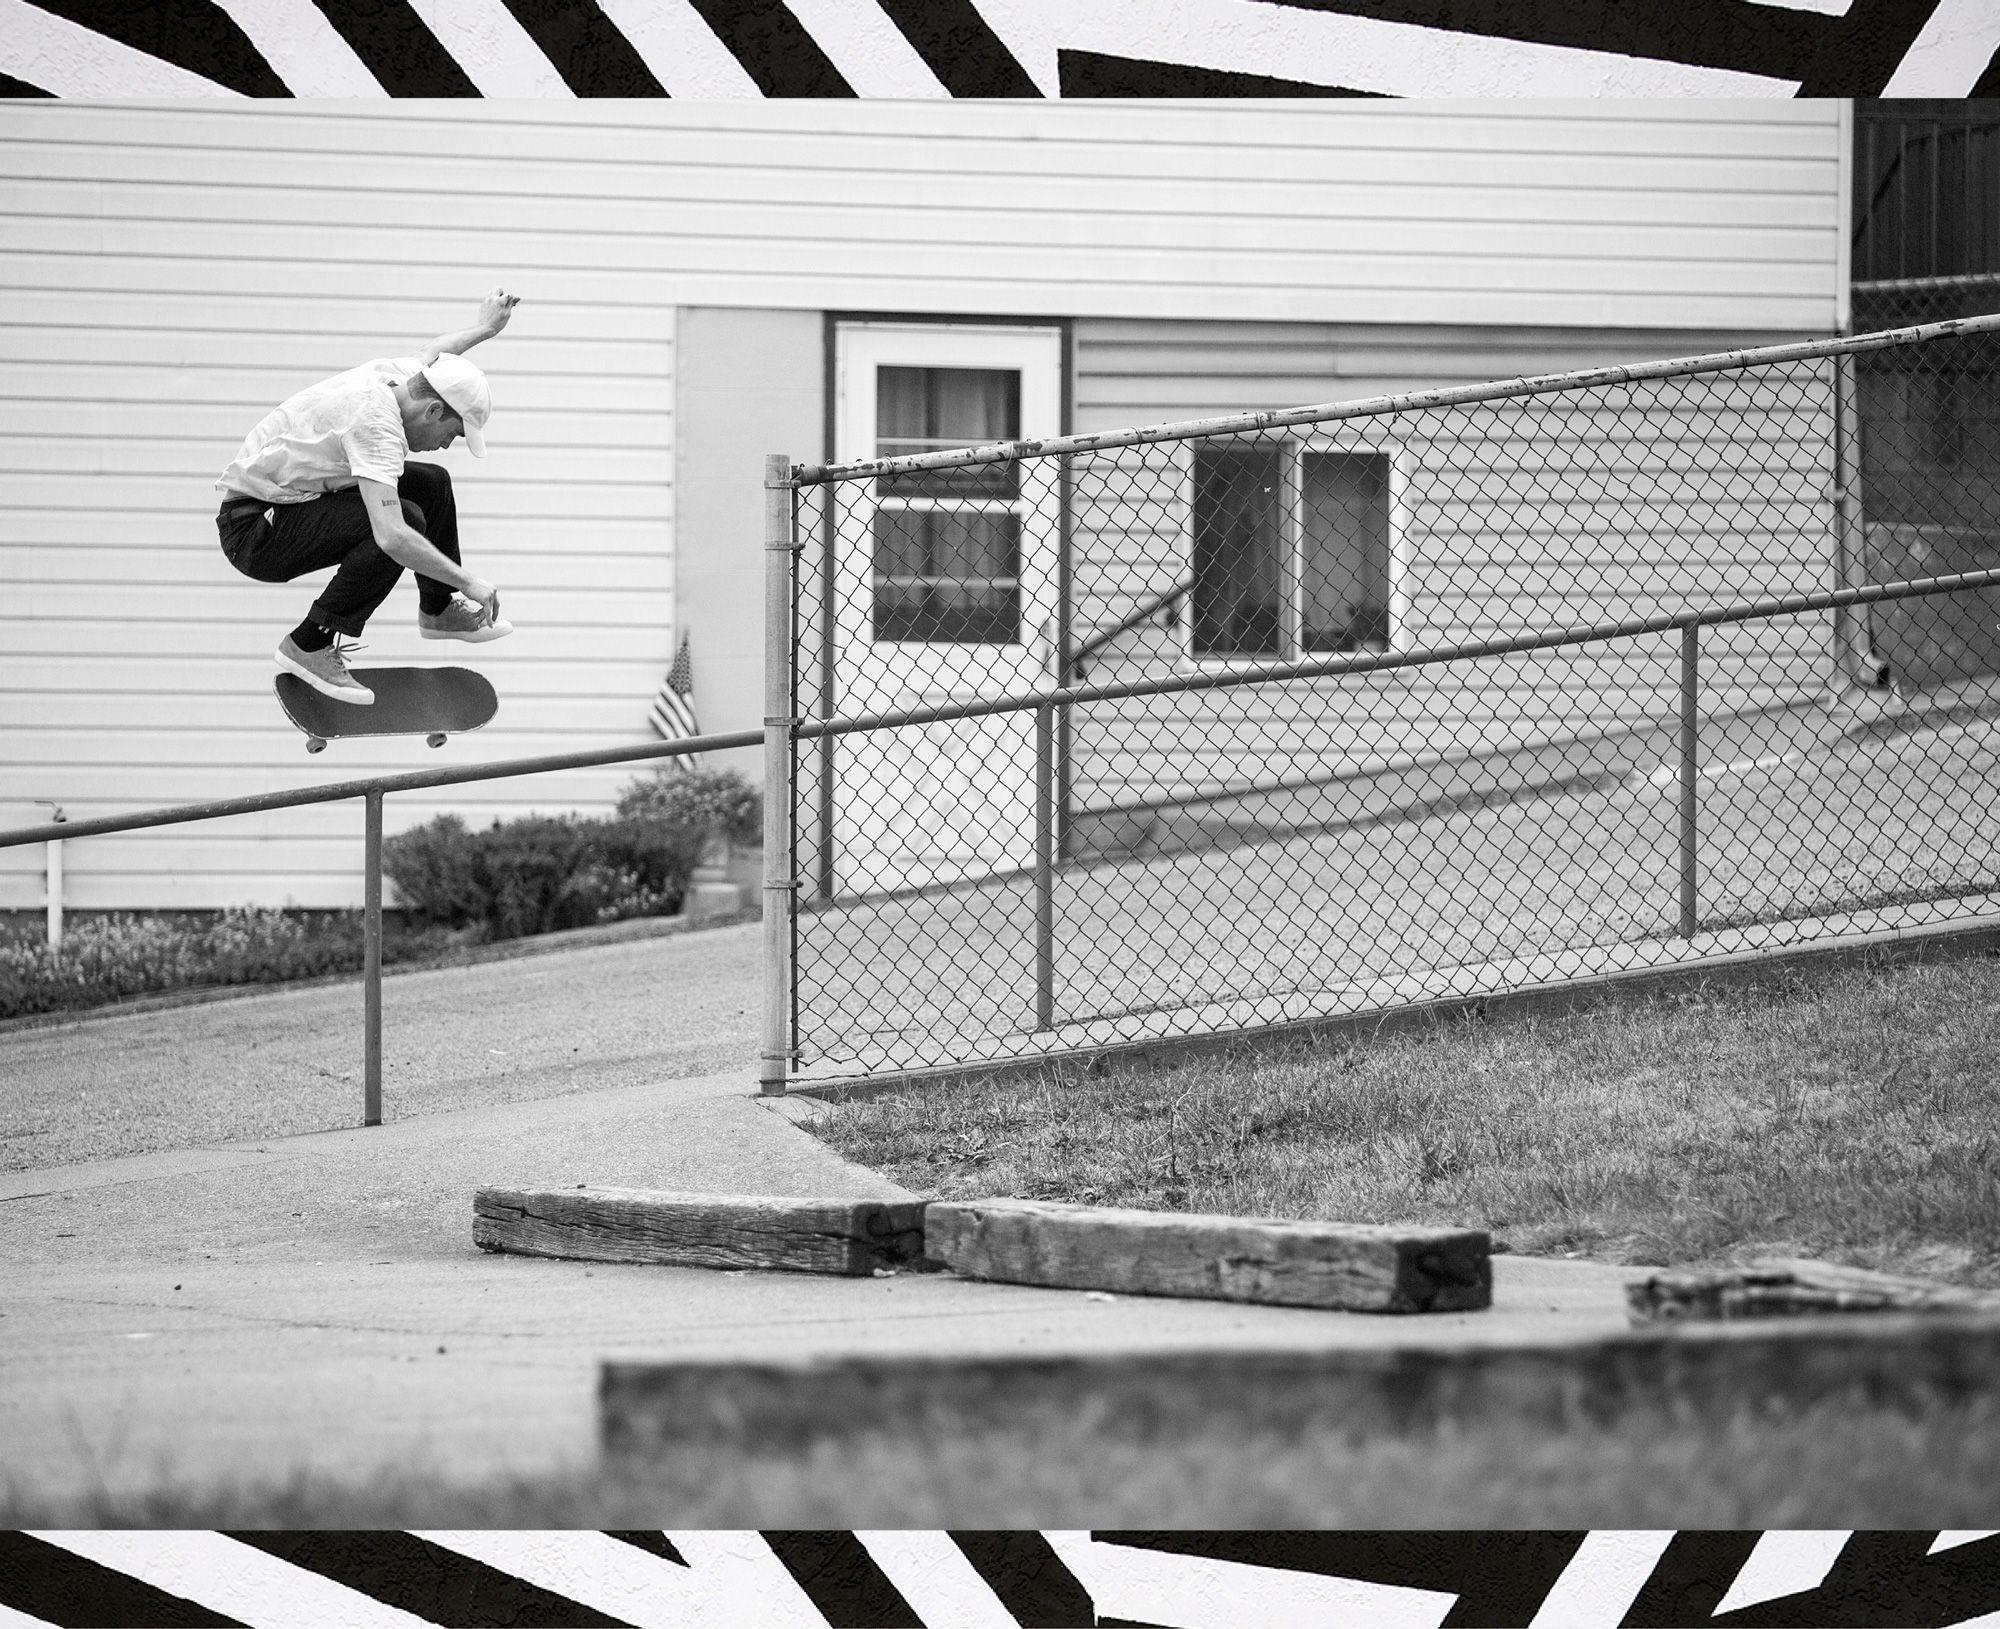 Brad Comer, backside kickflip.